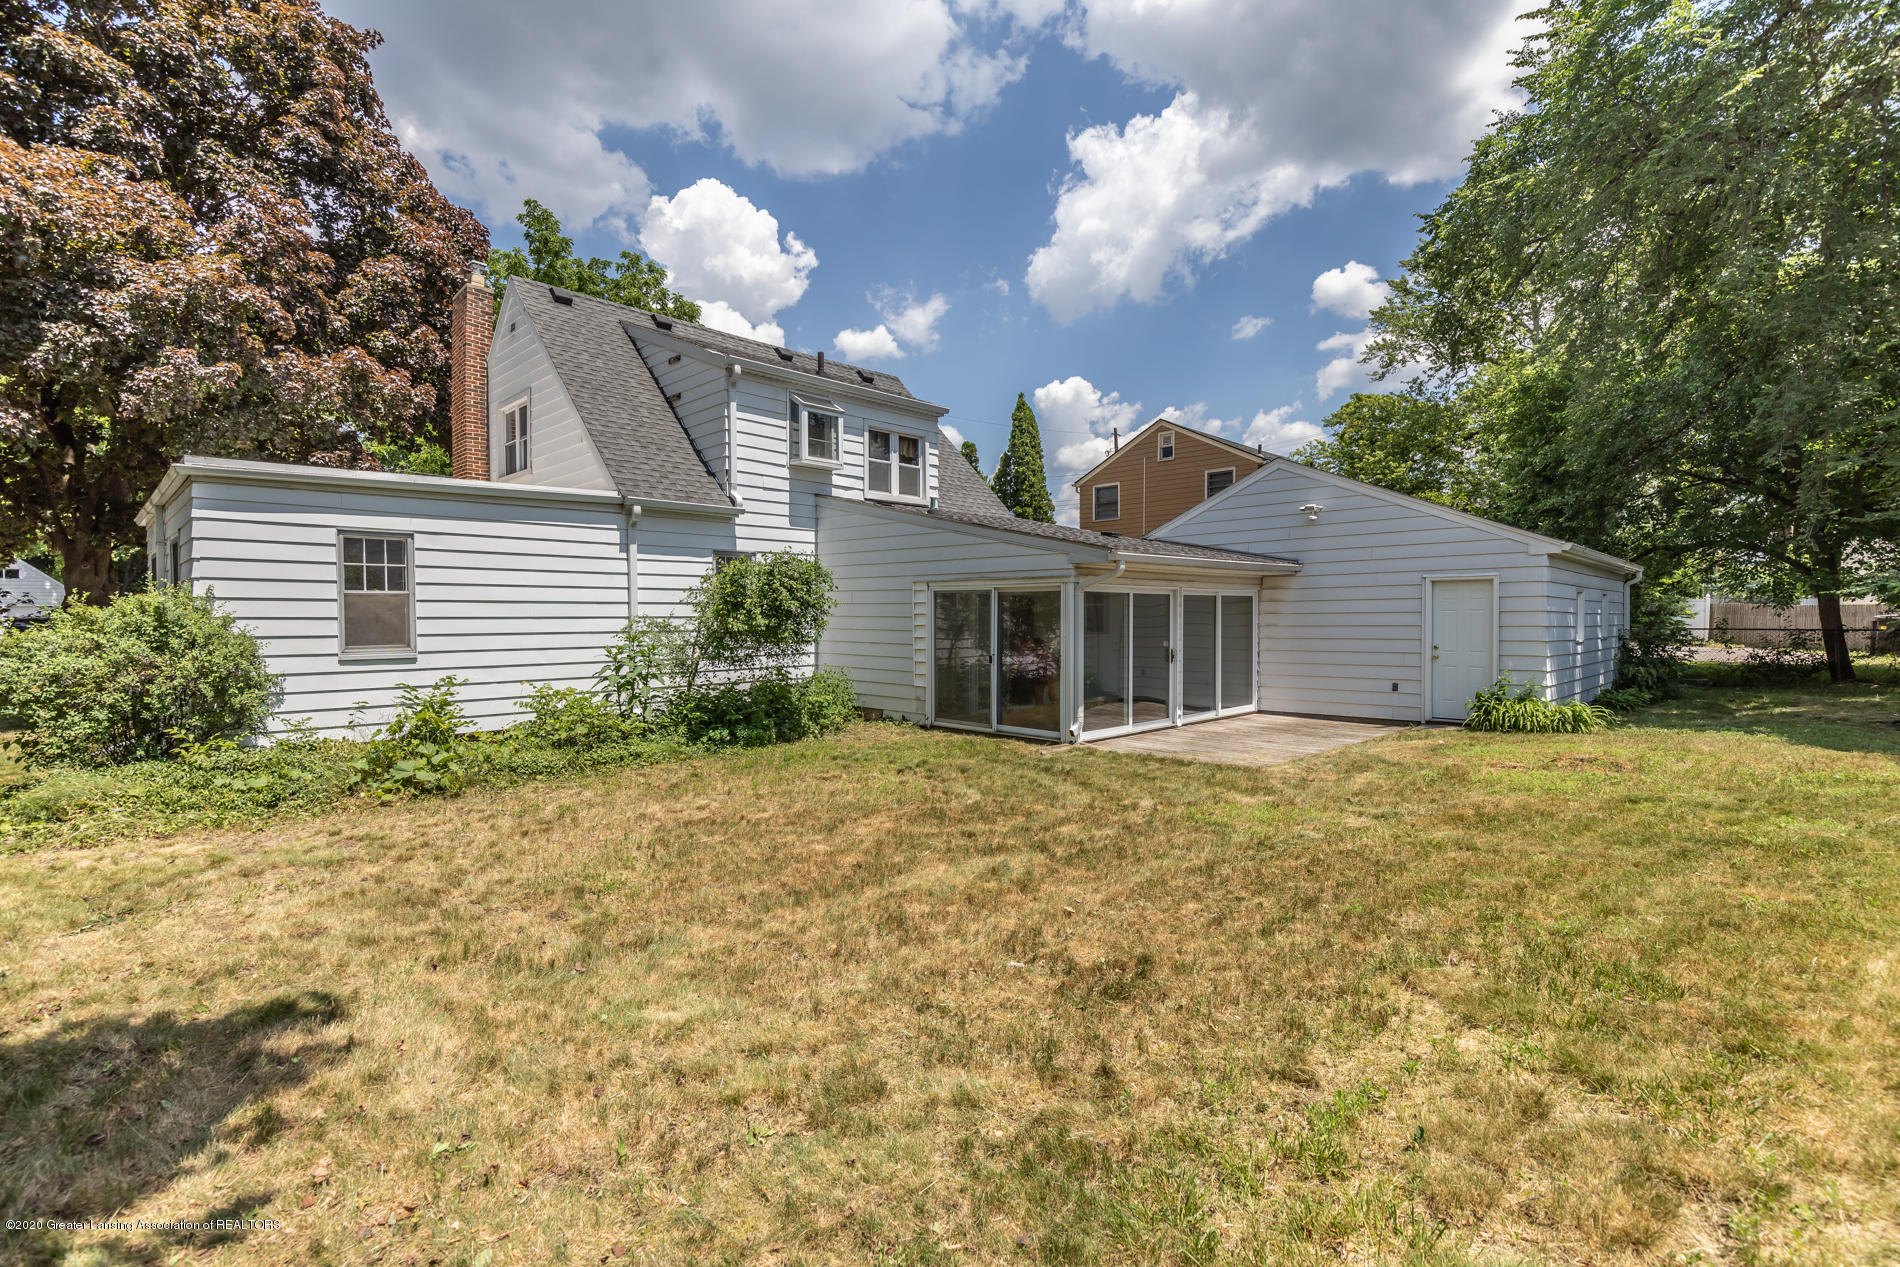 931 Lilac Ave - lilacback3(1of1) - 4